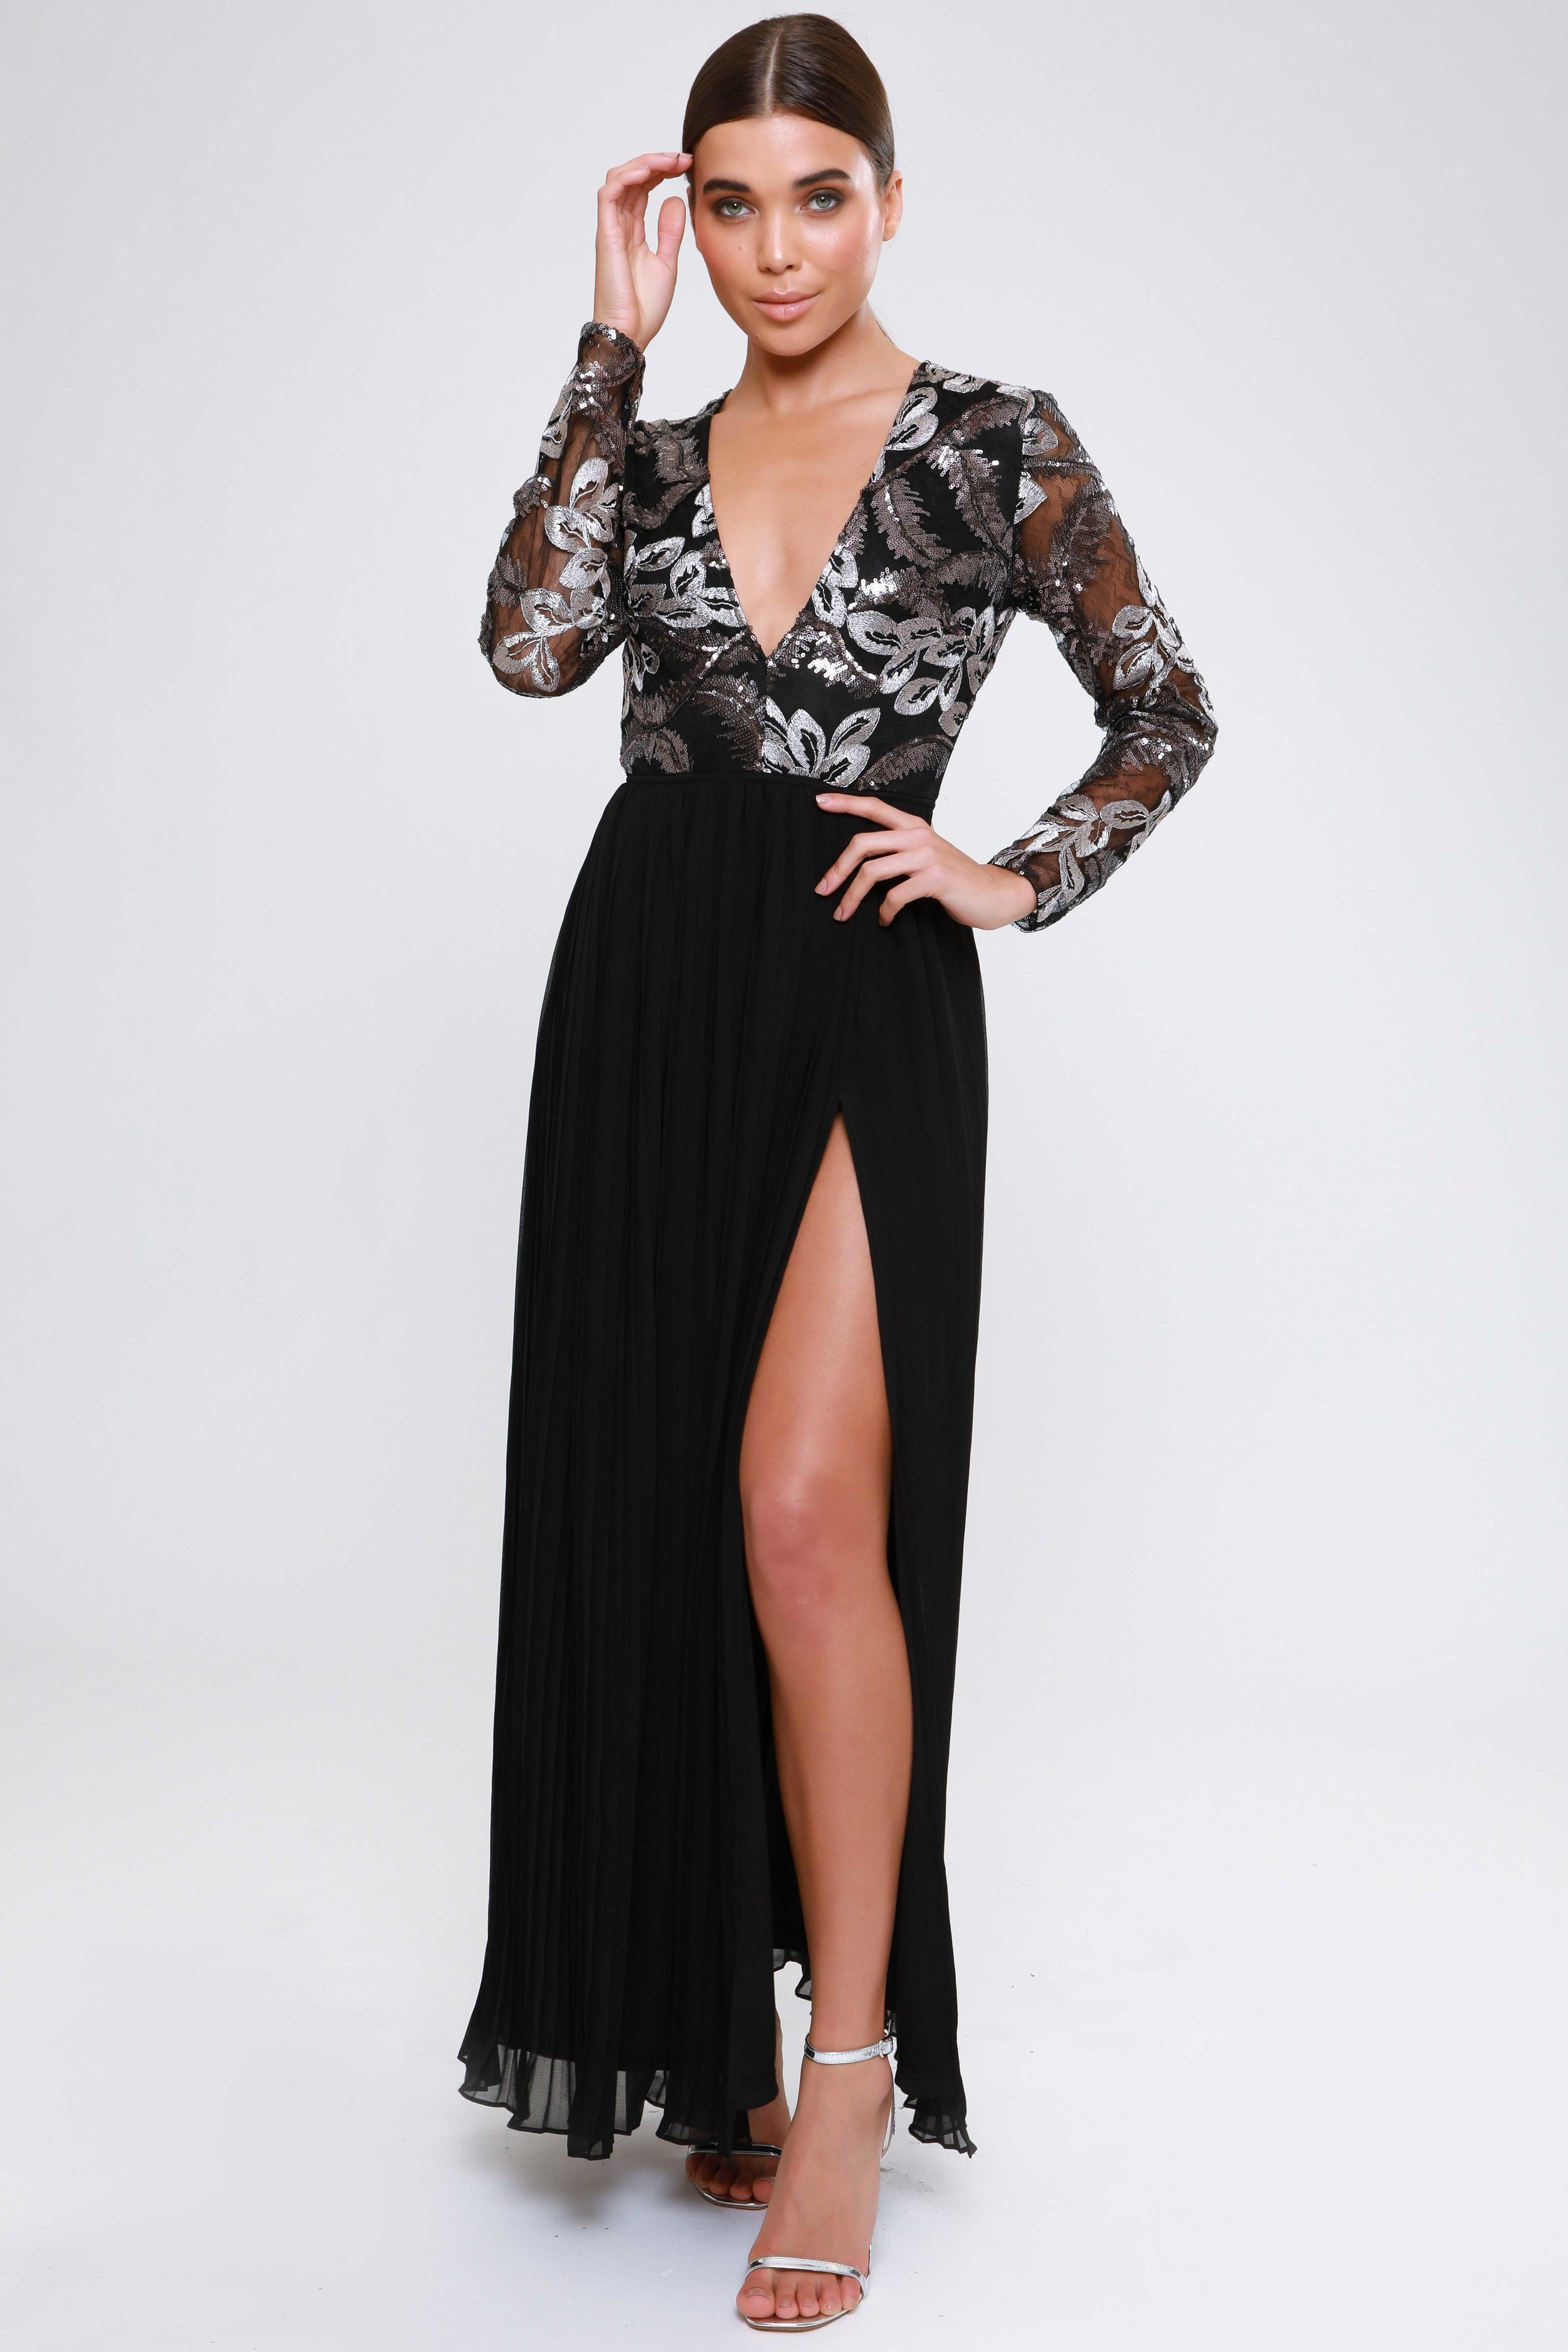 Plunge Pleated Maxi Dress  Thigh High Split   £69.00